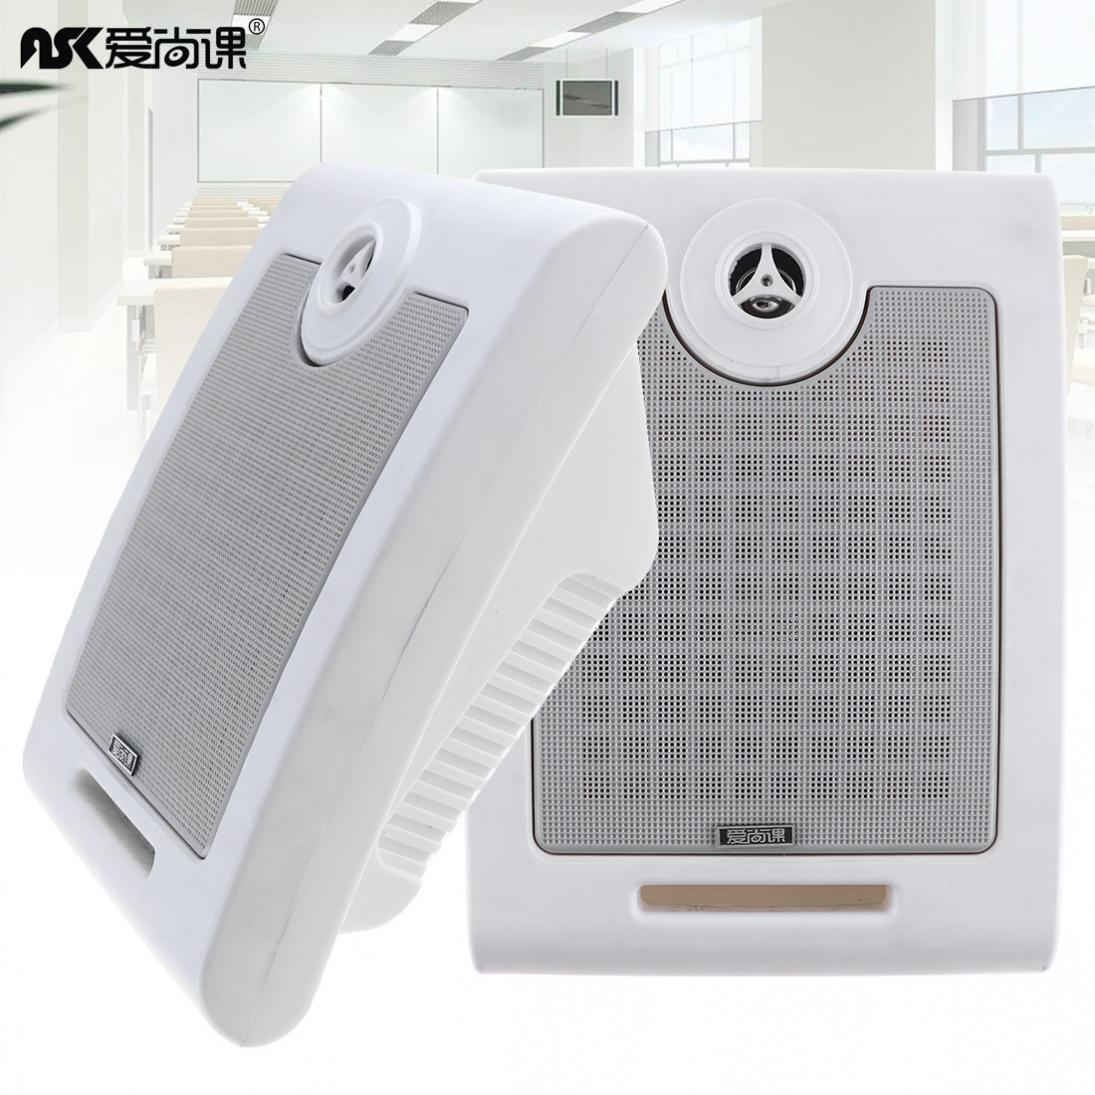 2pcs/lot 10W Fashion Wall-mounted Ceiling Speaker Public Broadcast Speaker  for Park / School / Shopping Mall